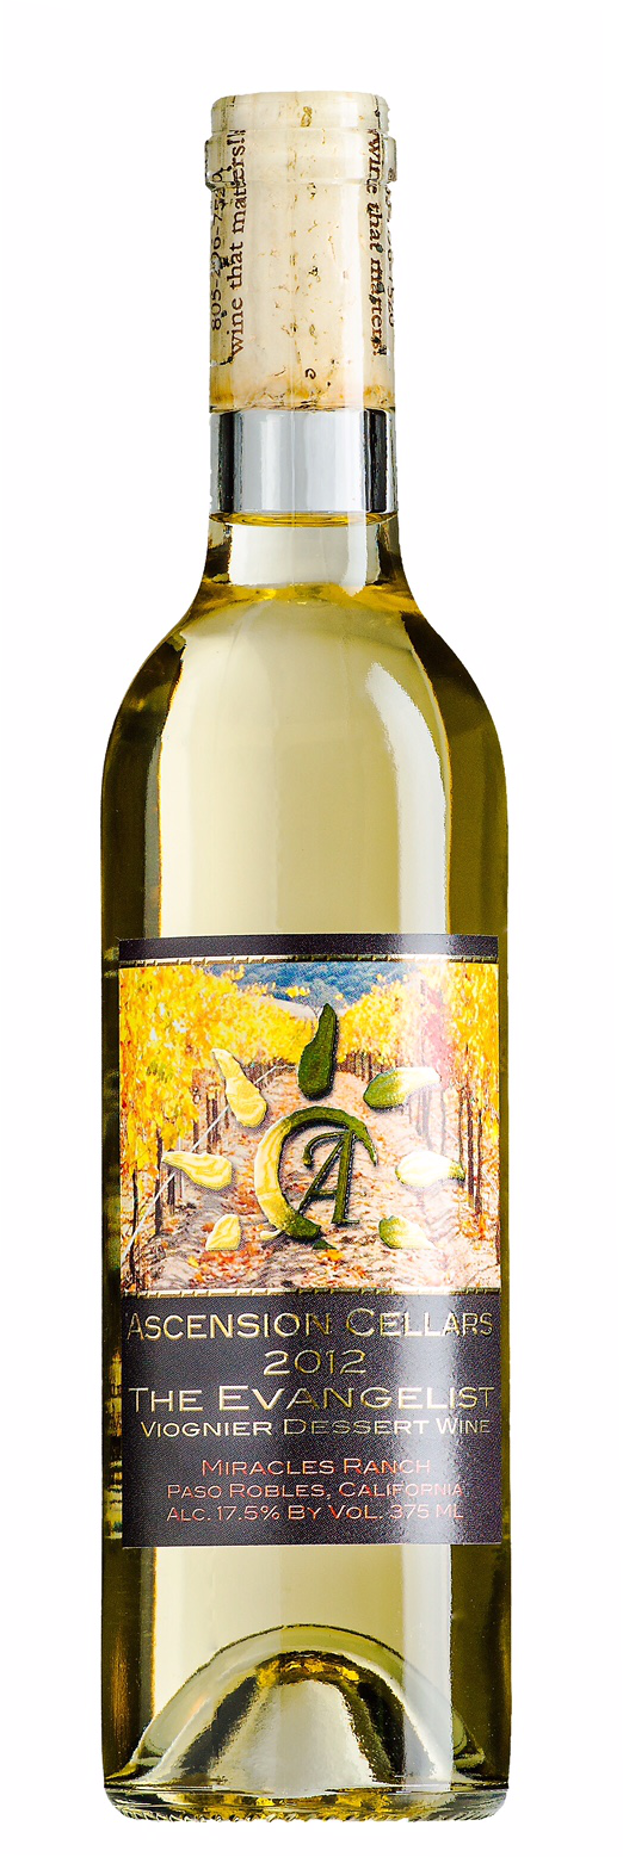 2012 Ascension Cellars Evangelist Late Harvest Viognier - Qorkz